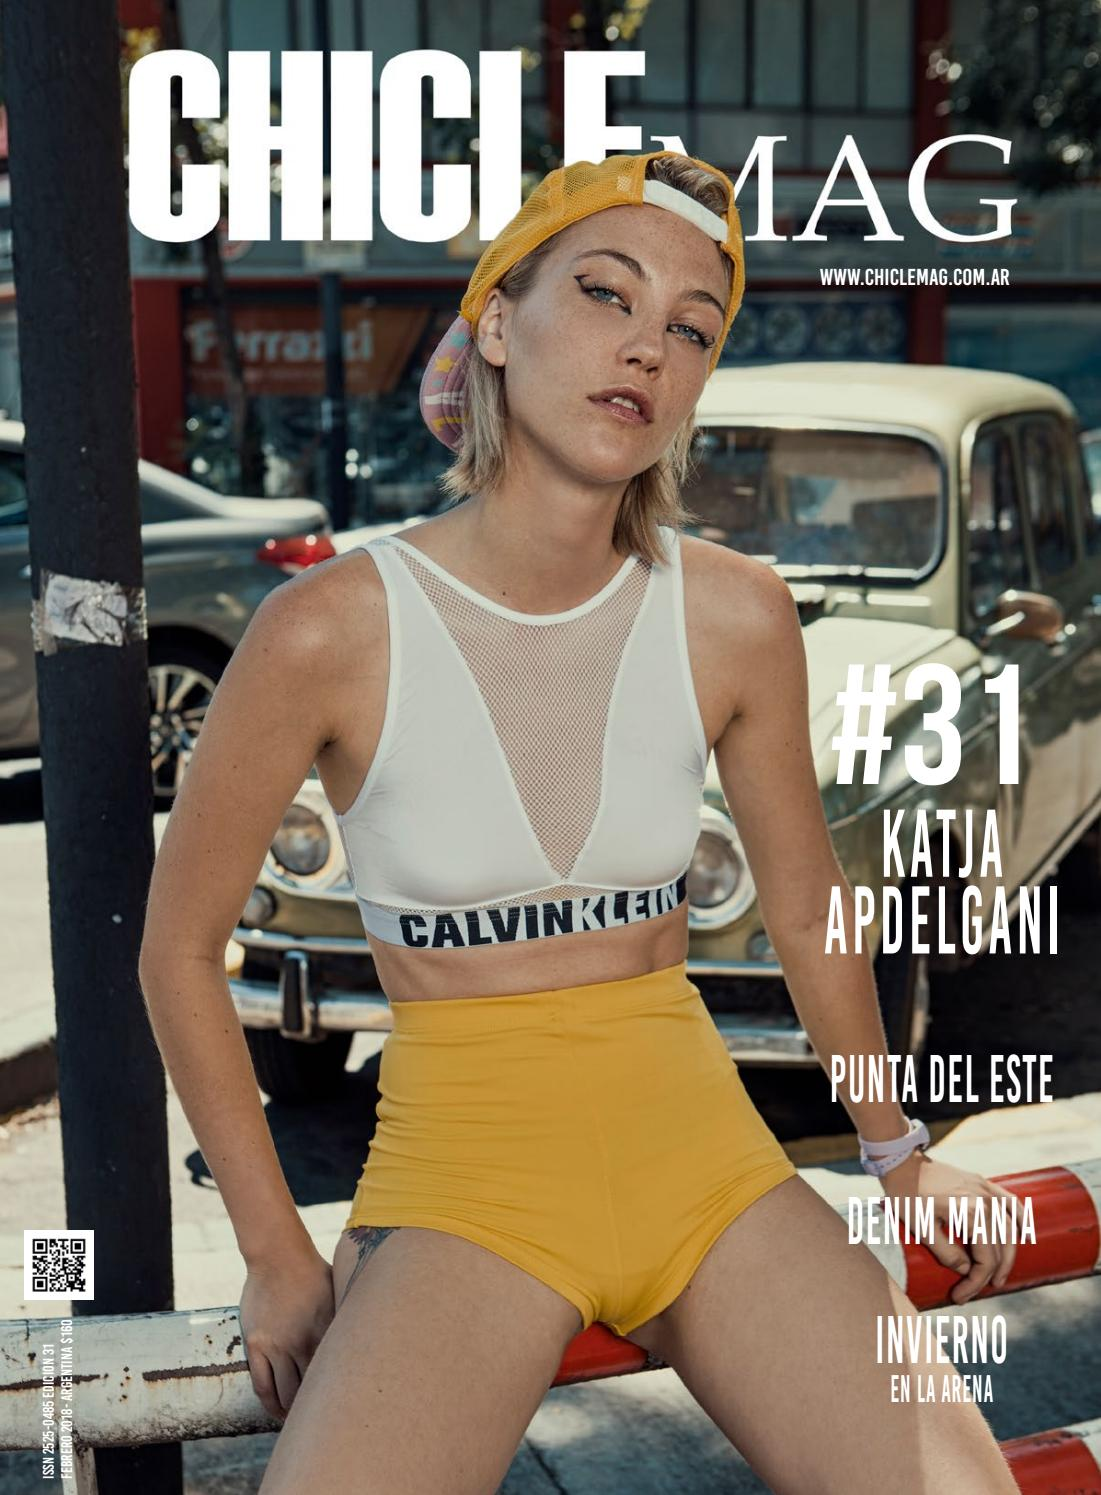 Issuu By Mag31 Chicle Chicle Issuu Issuu Mag31 Chicle By Chicle By Mag31 mO8vNn0w